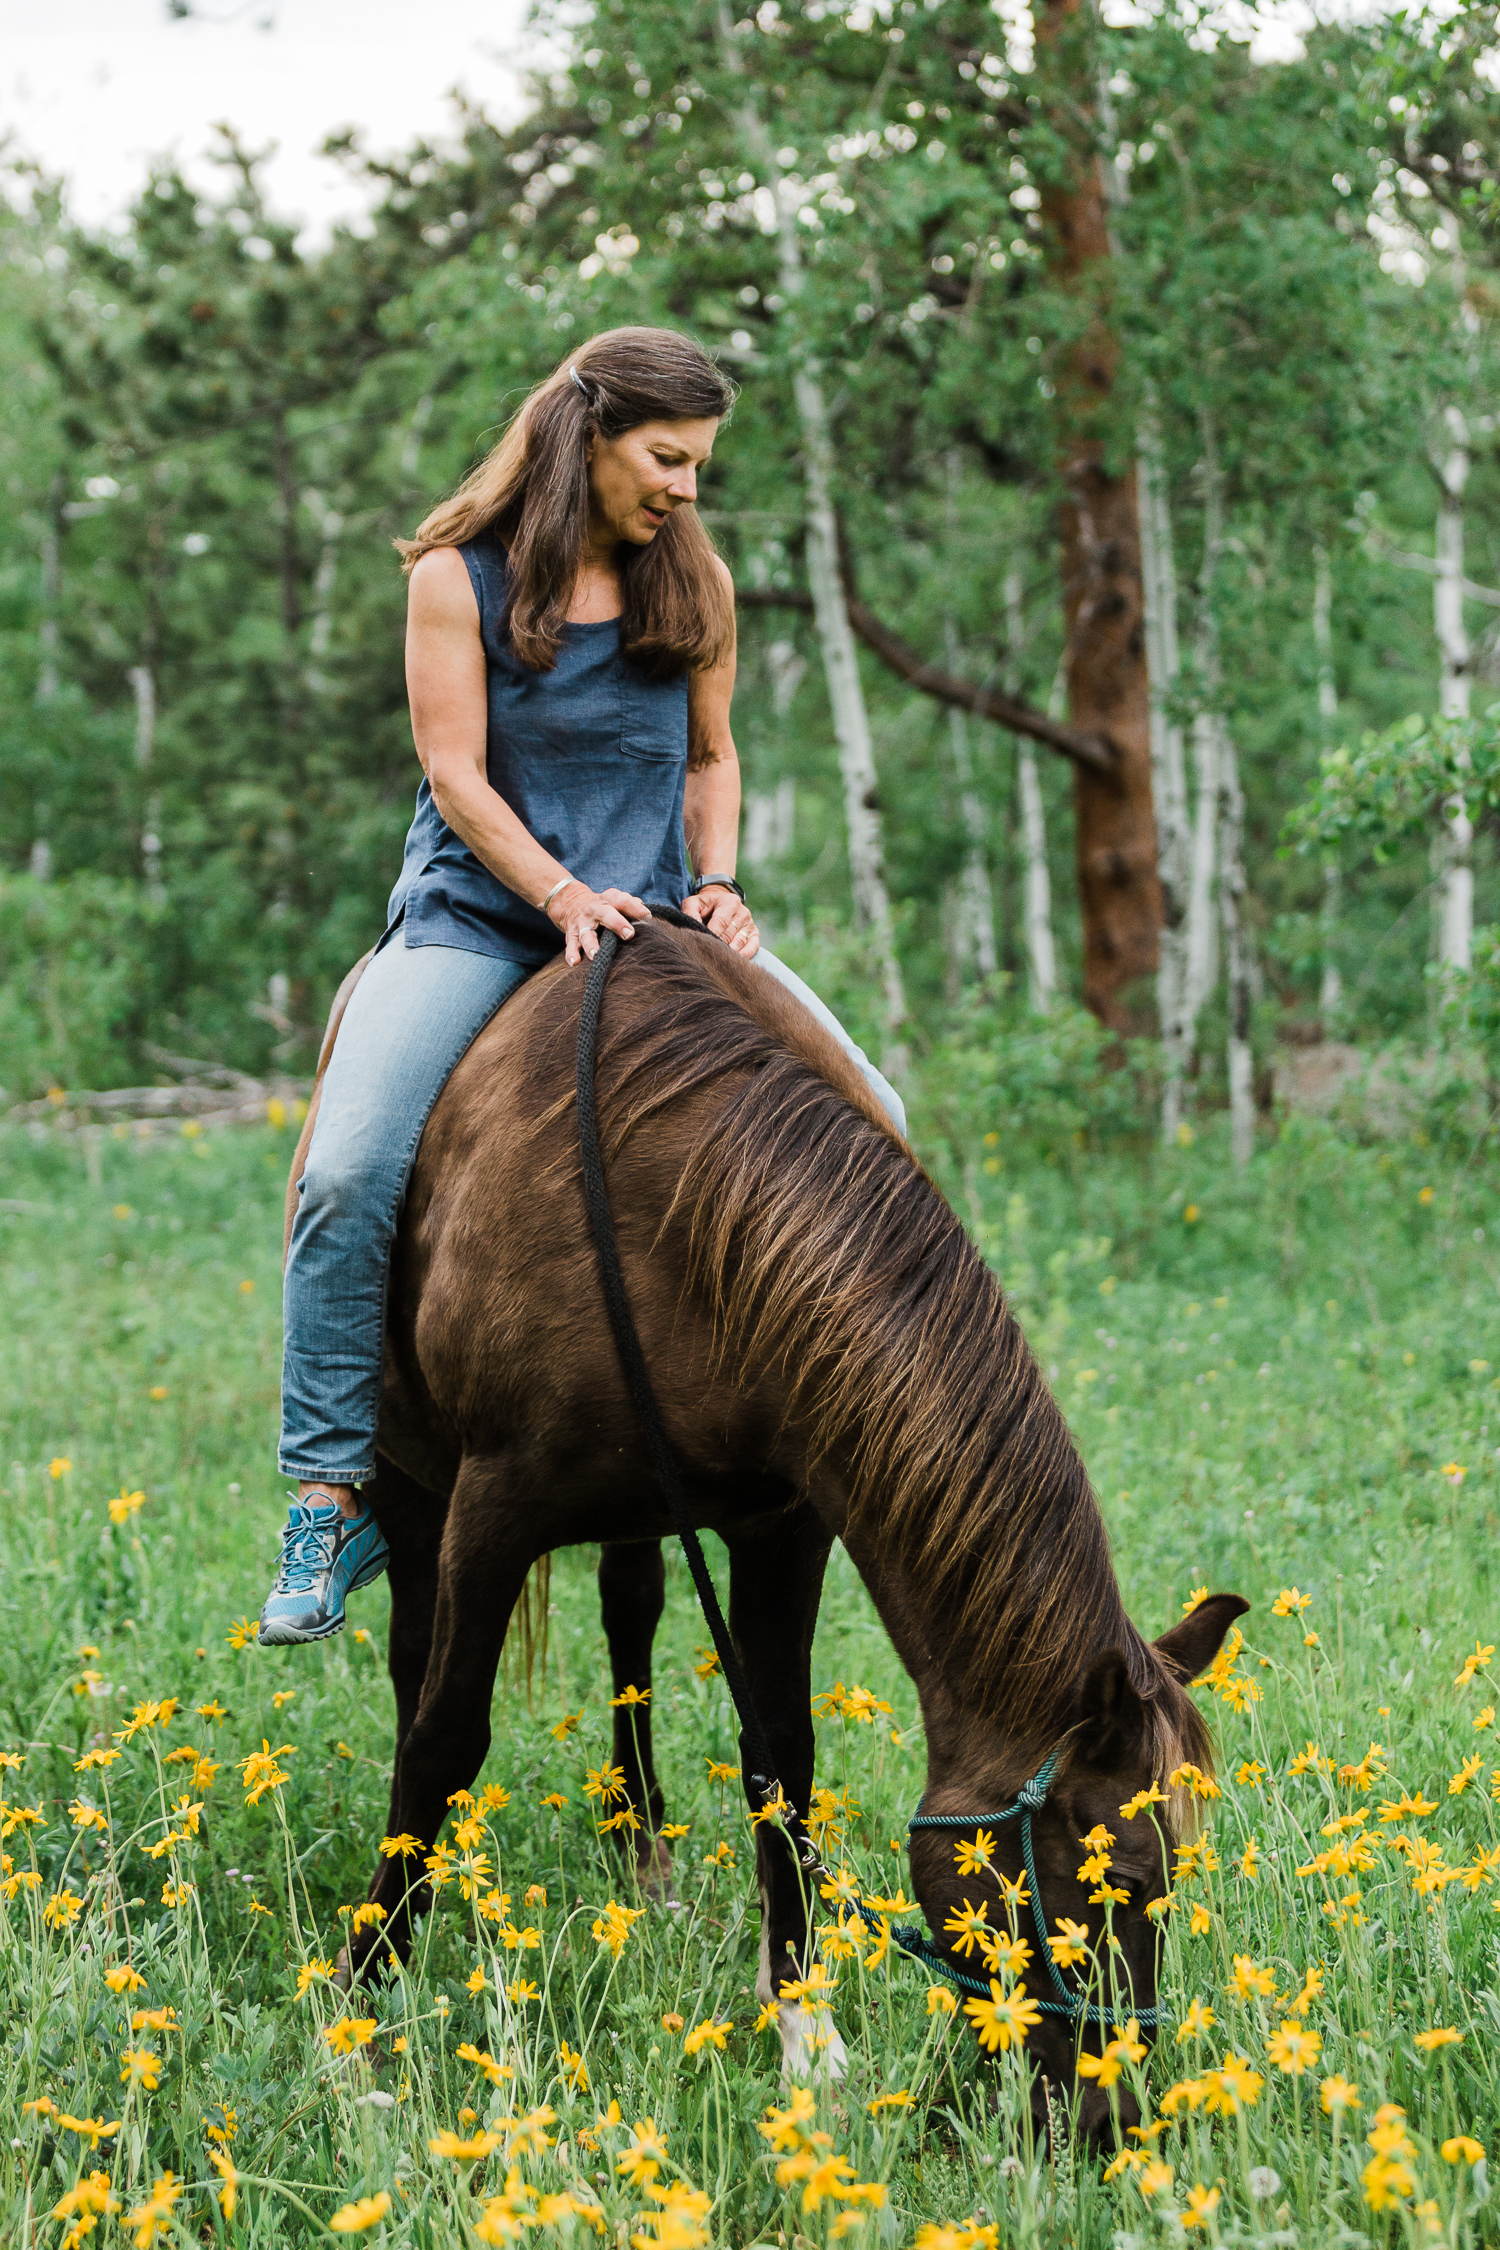 denver_equine_photography_033.jpg